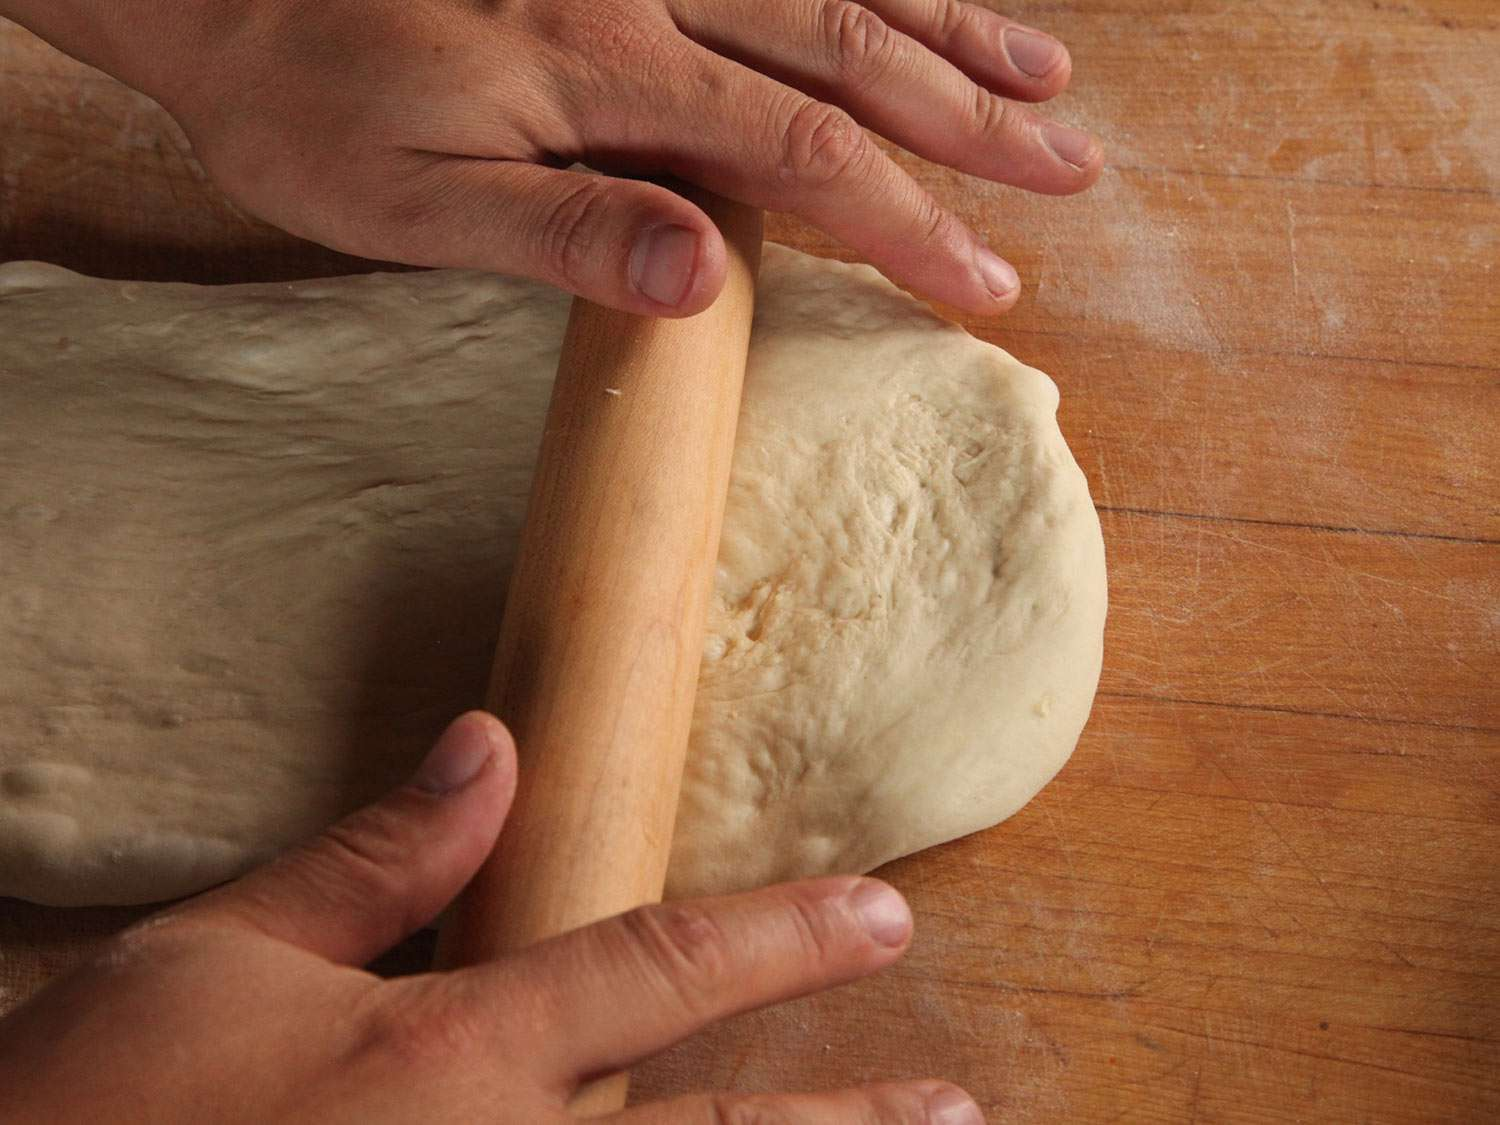 A pair of hands using a rolling pin to roll out dough on a wooden surface